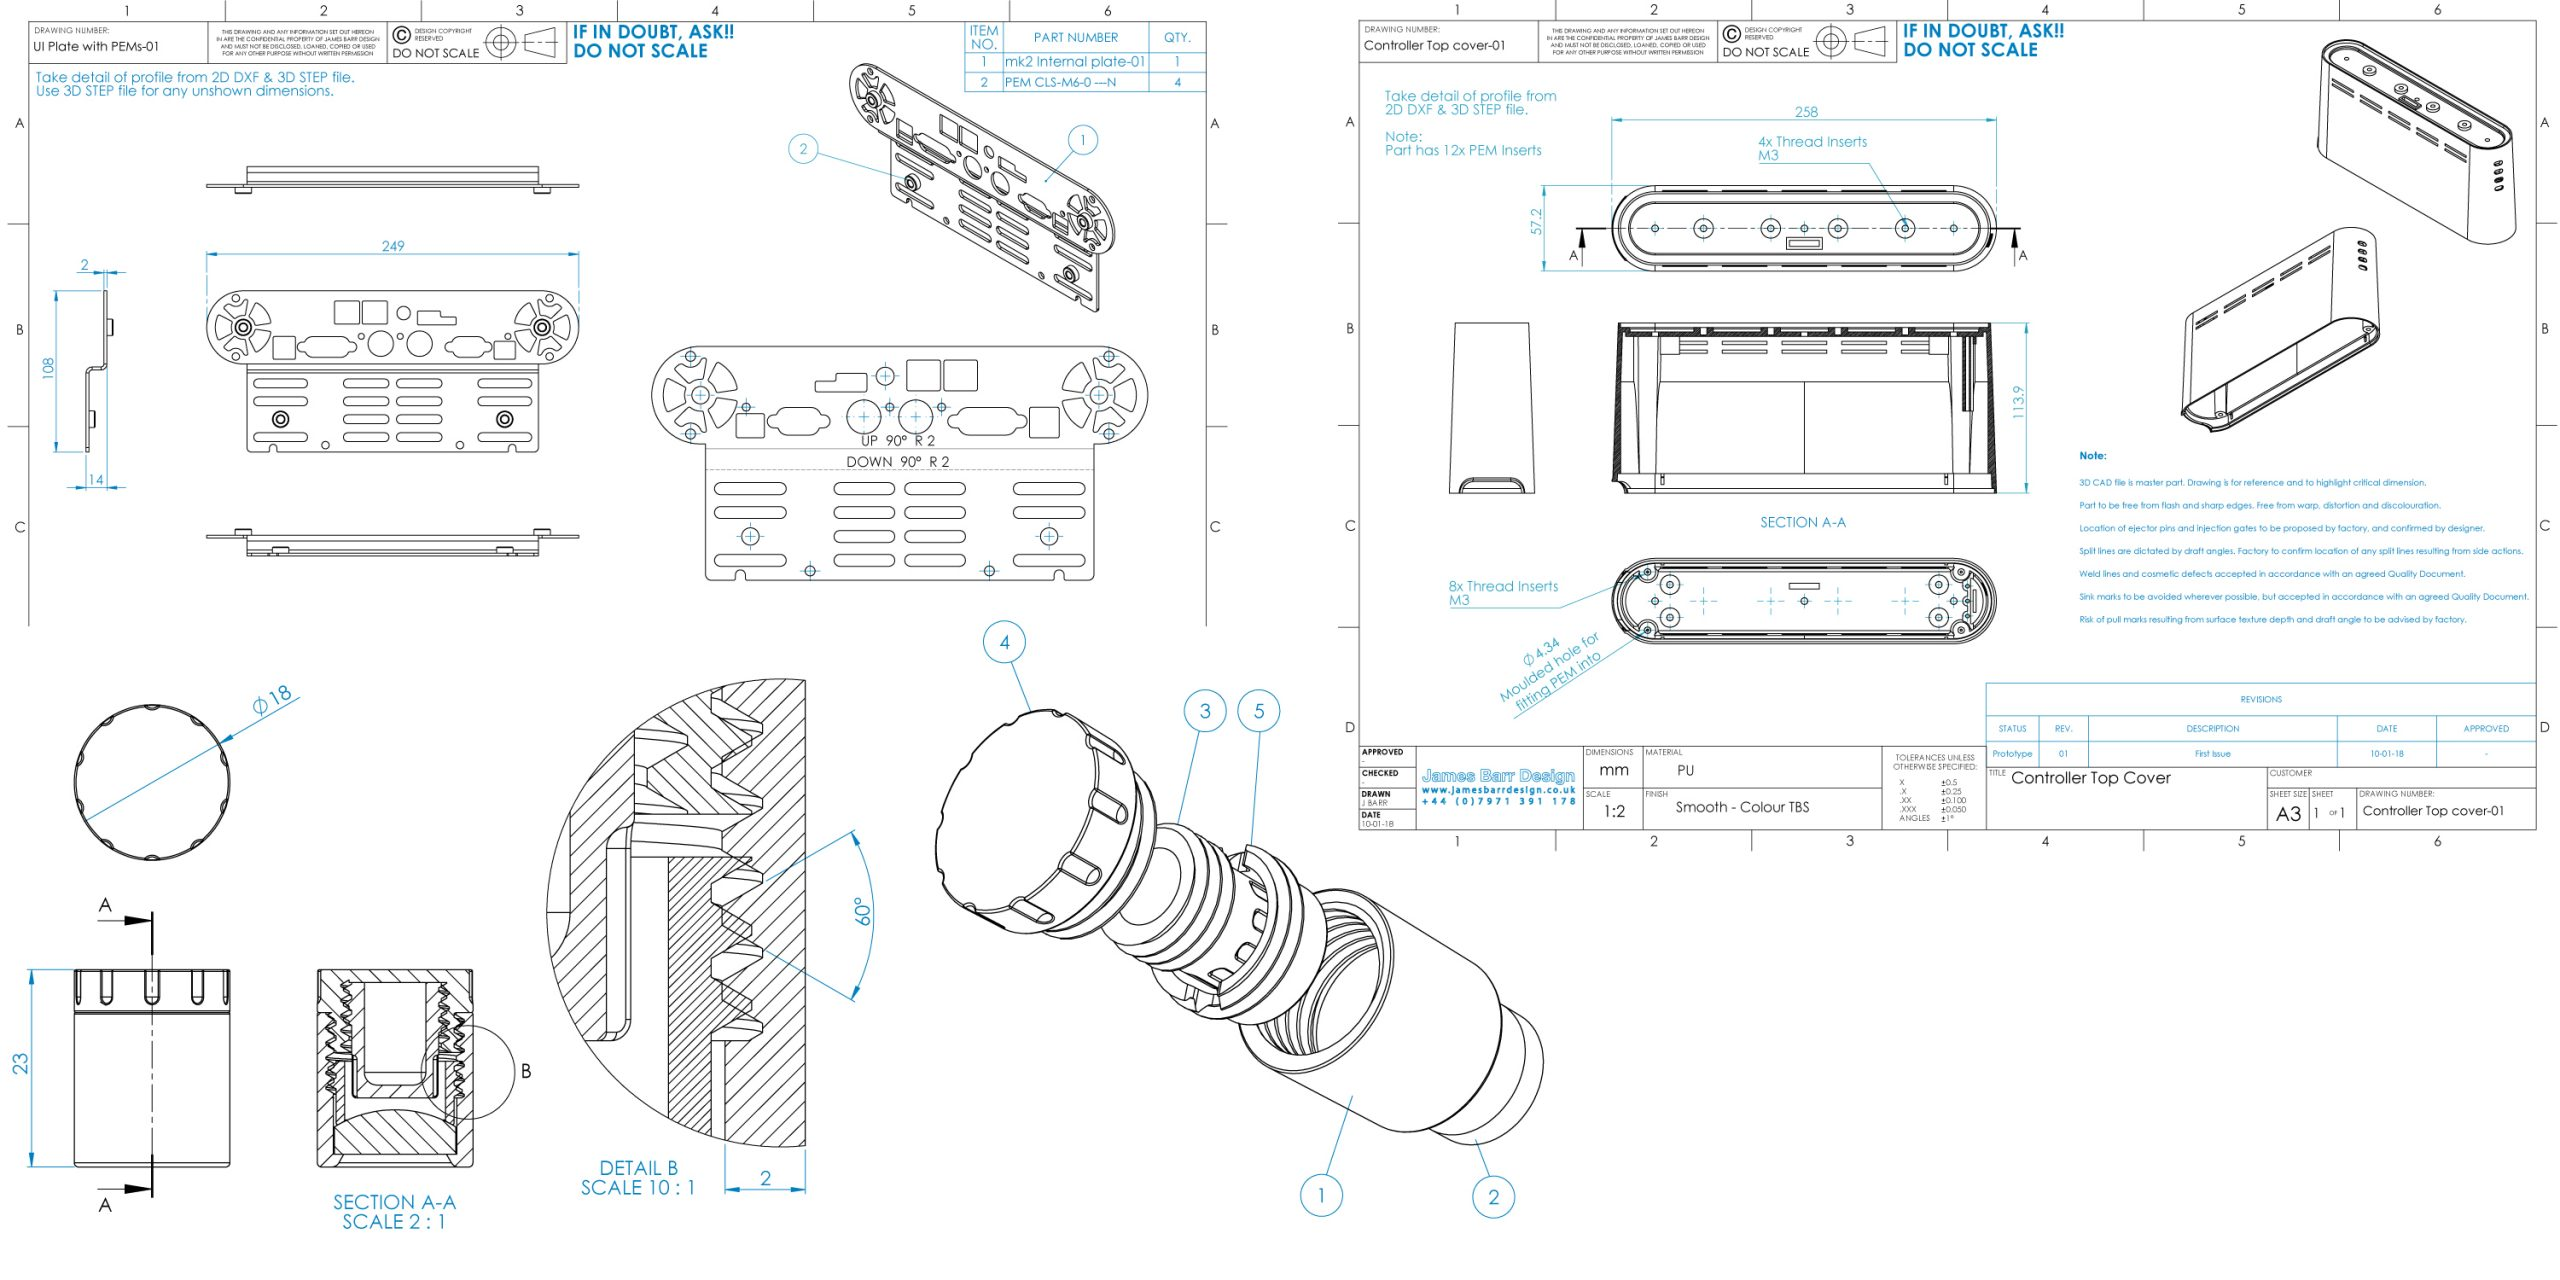 We use SolidWorks to create control drawings